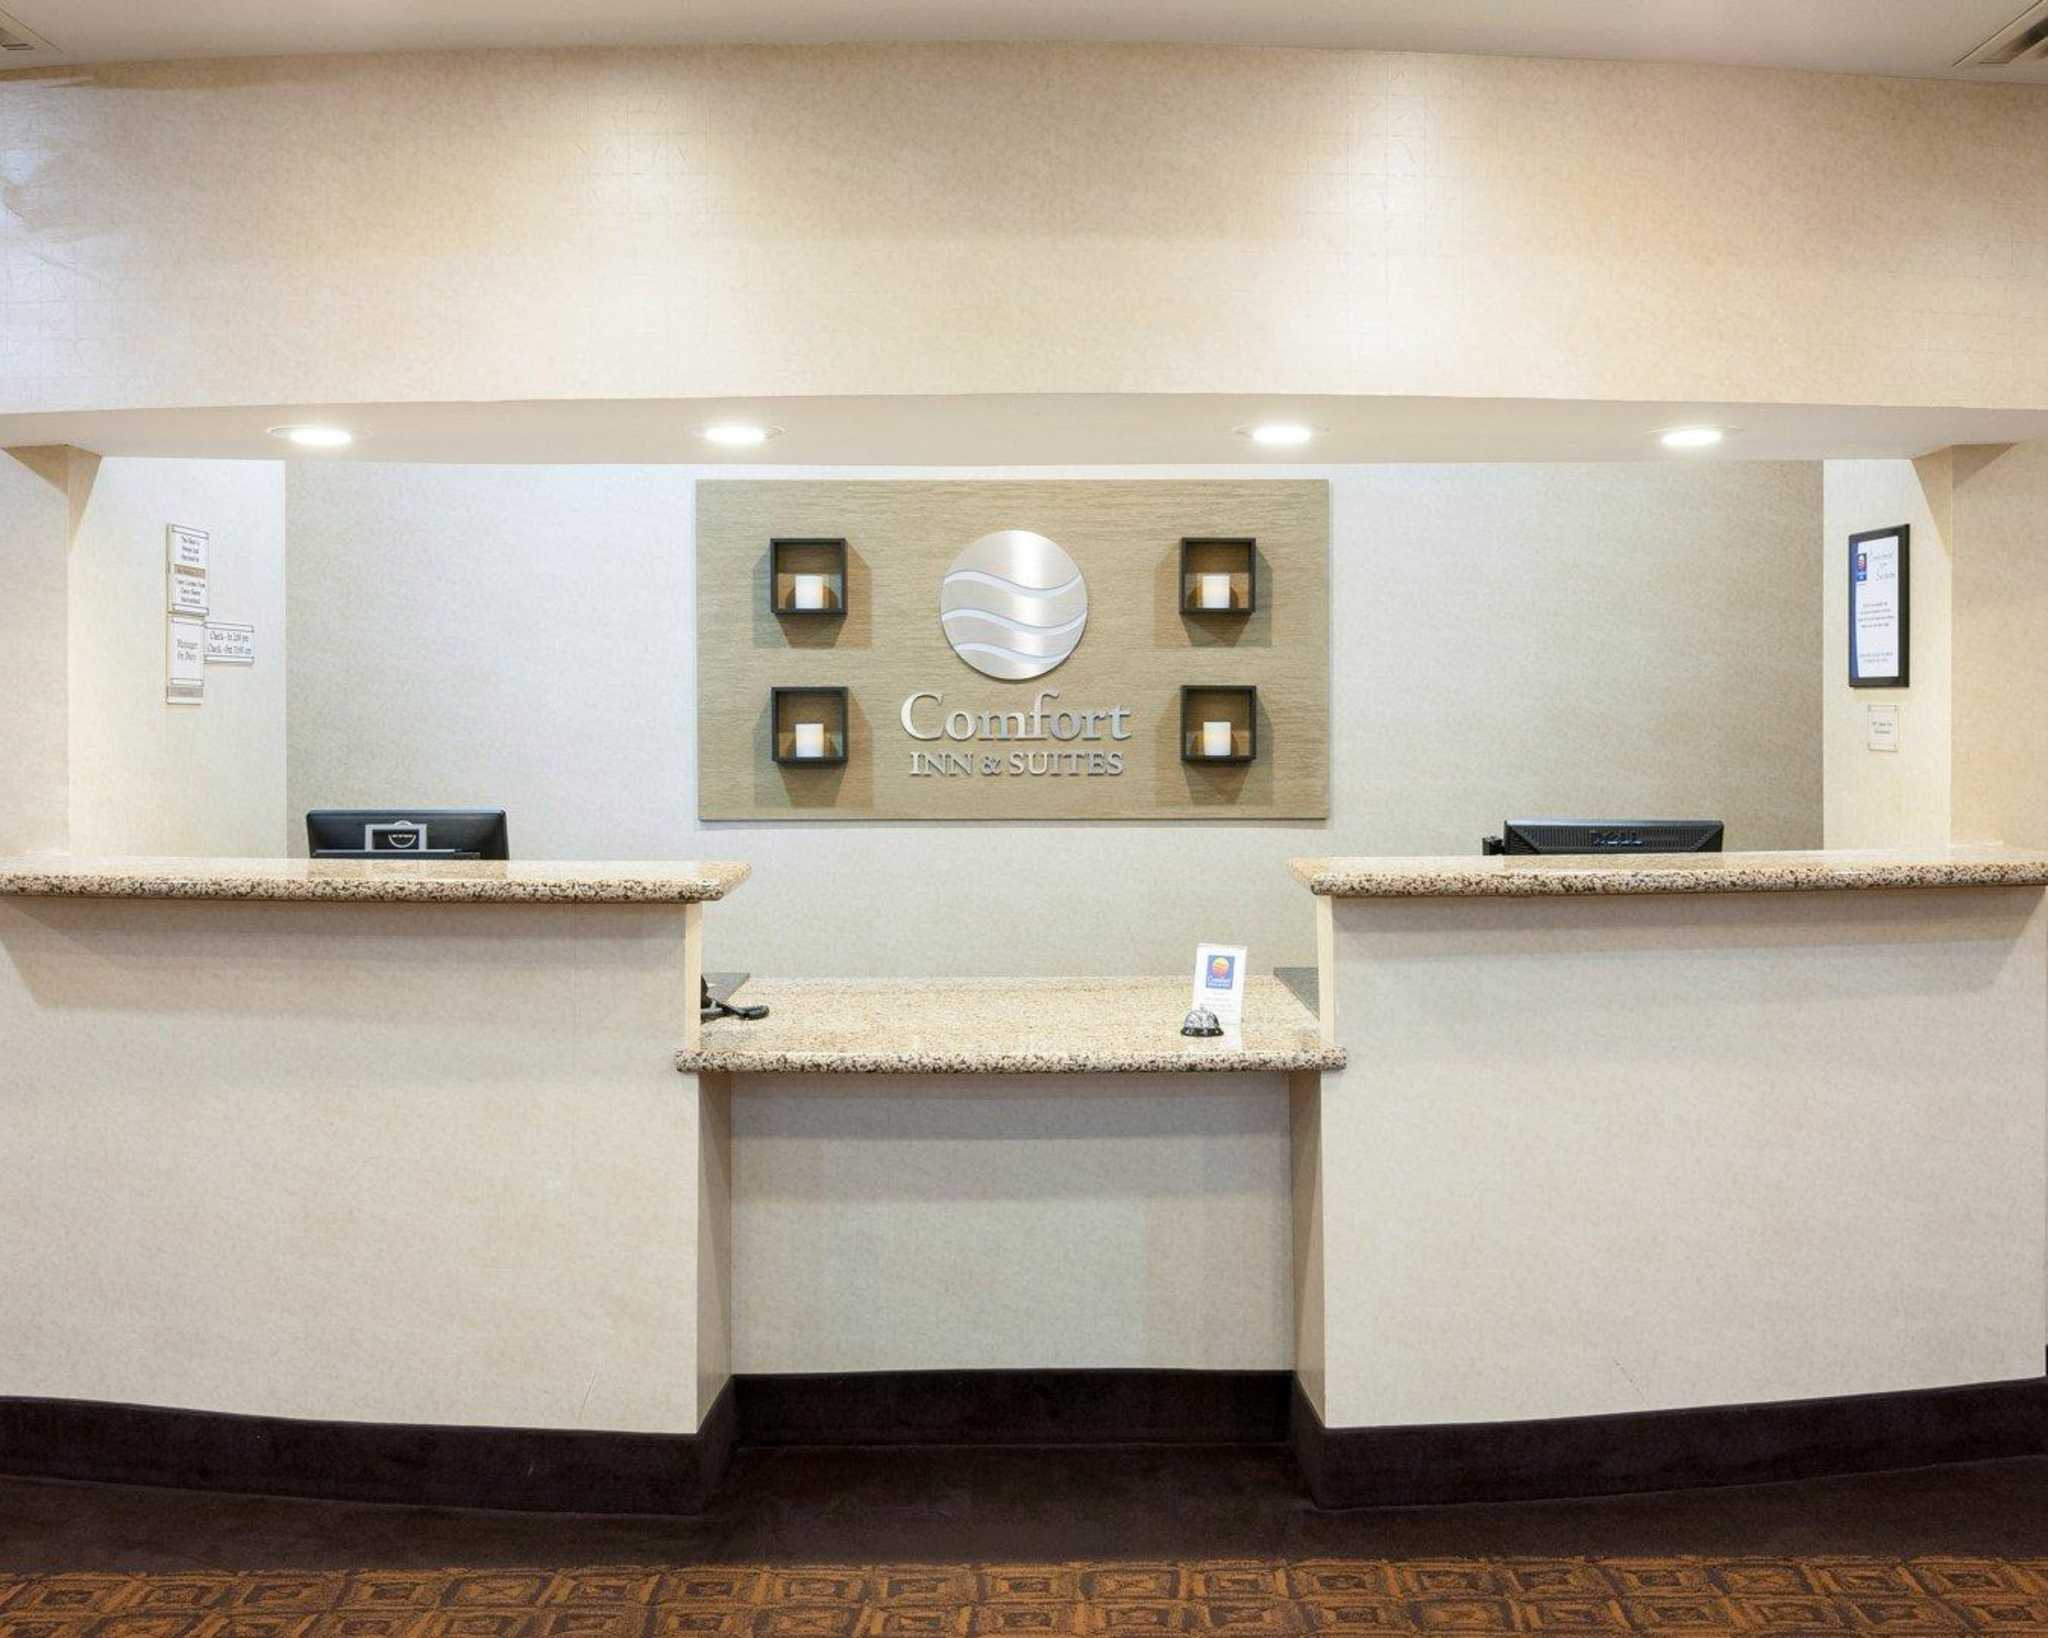 Comfort Inn & Suites Regional Medical Center image 15